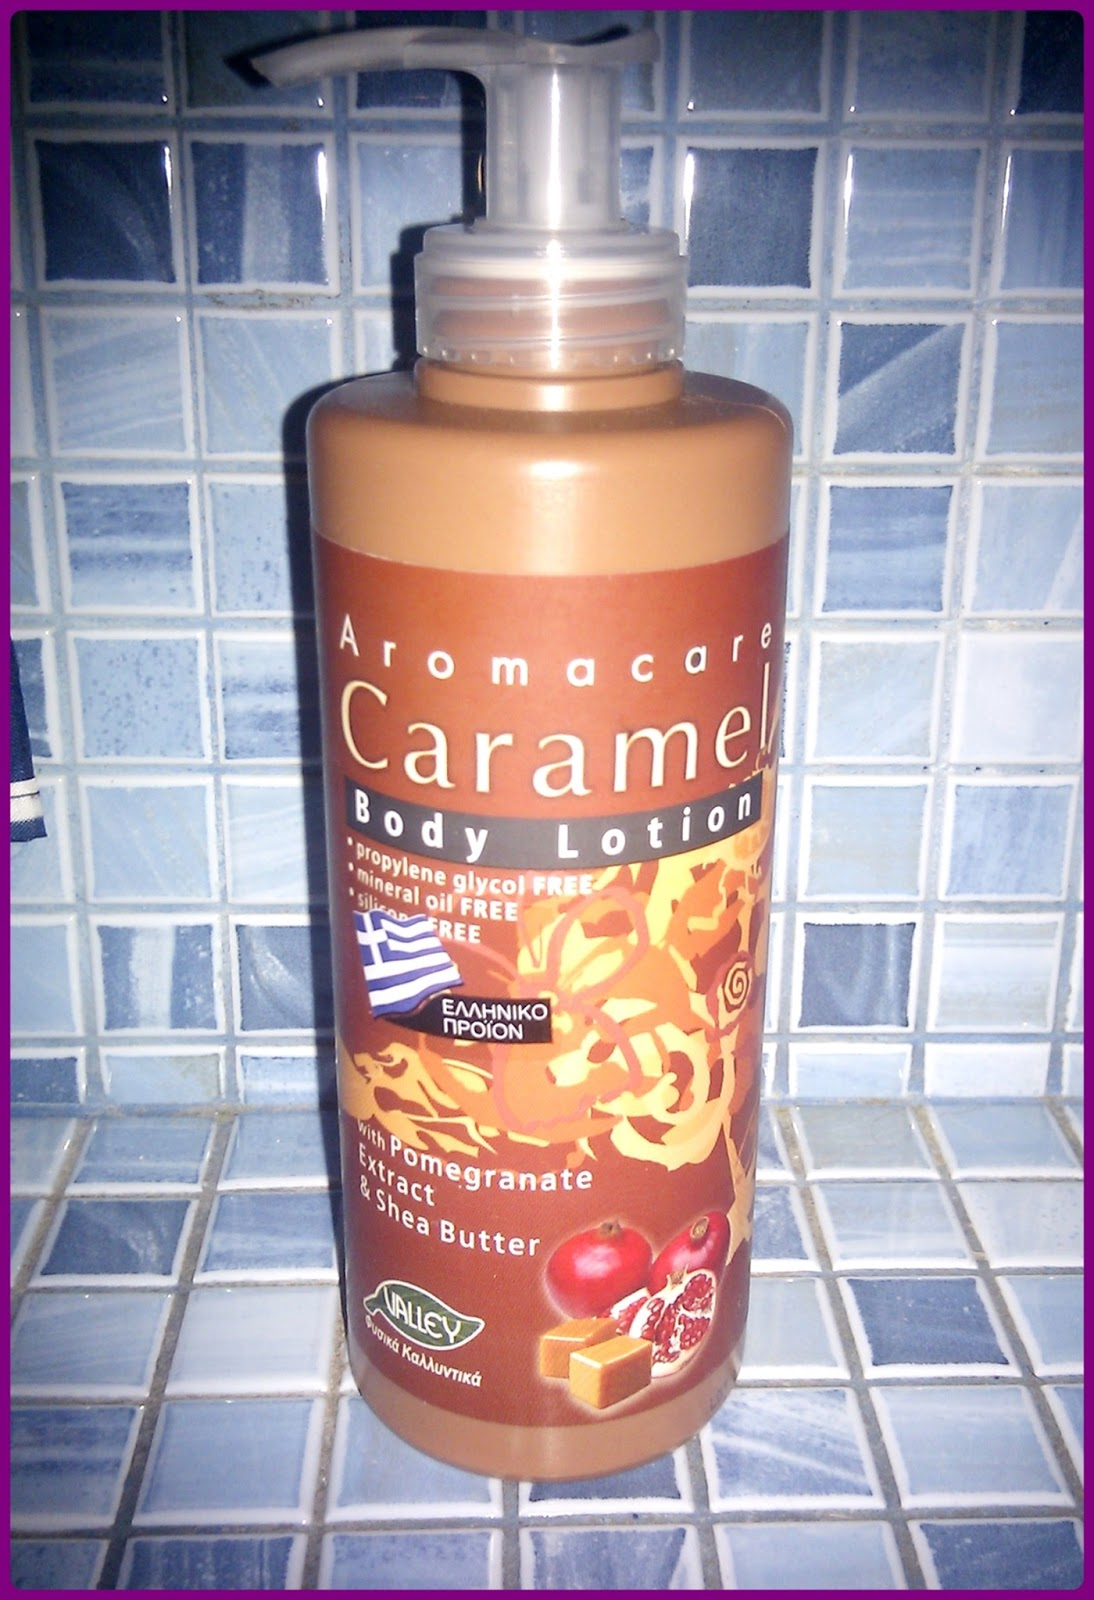 Valley Aromacare Caramel Body Lotion Καραμέλα